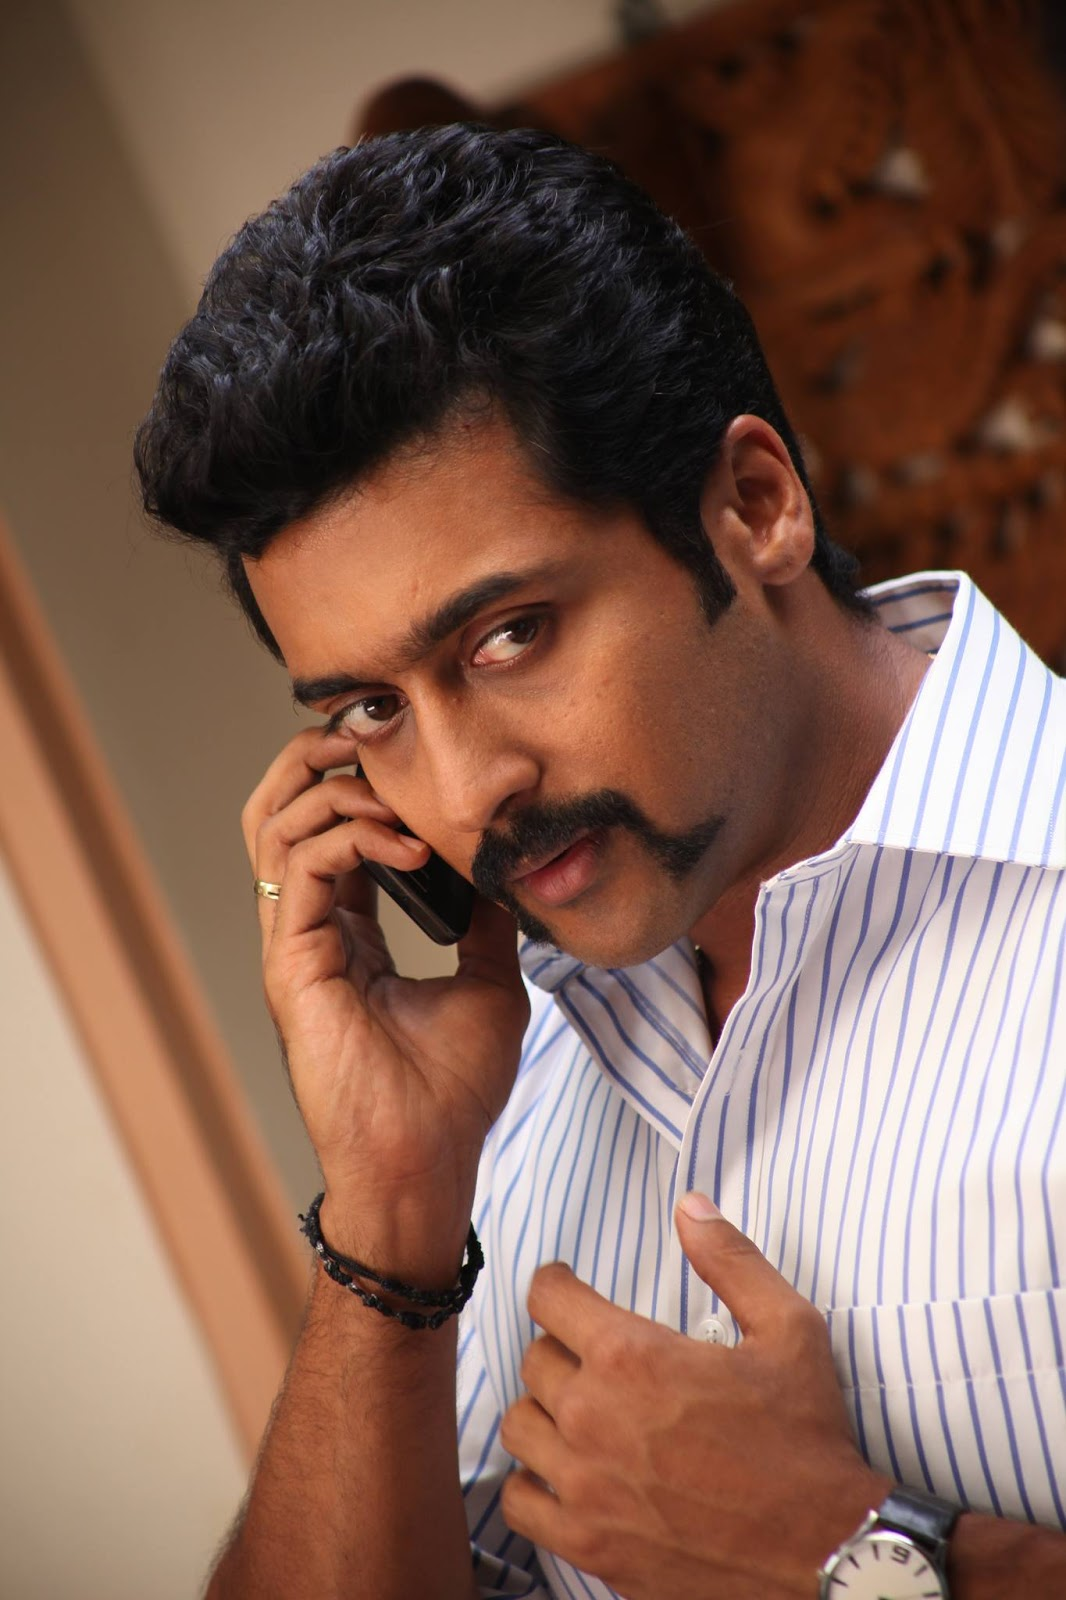 Singam surya wallpapers free download labzada wallpaper source singam 2 singam yamudu2 exclusive hd images actor surya masss thecheapjerseys Gallery